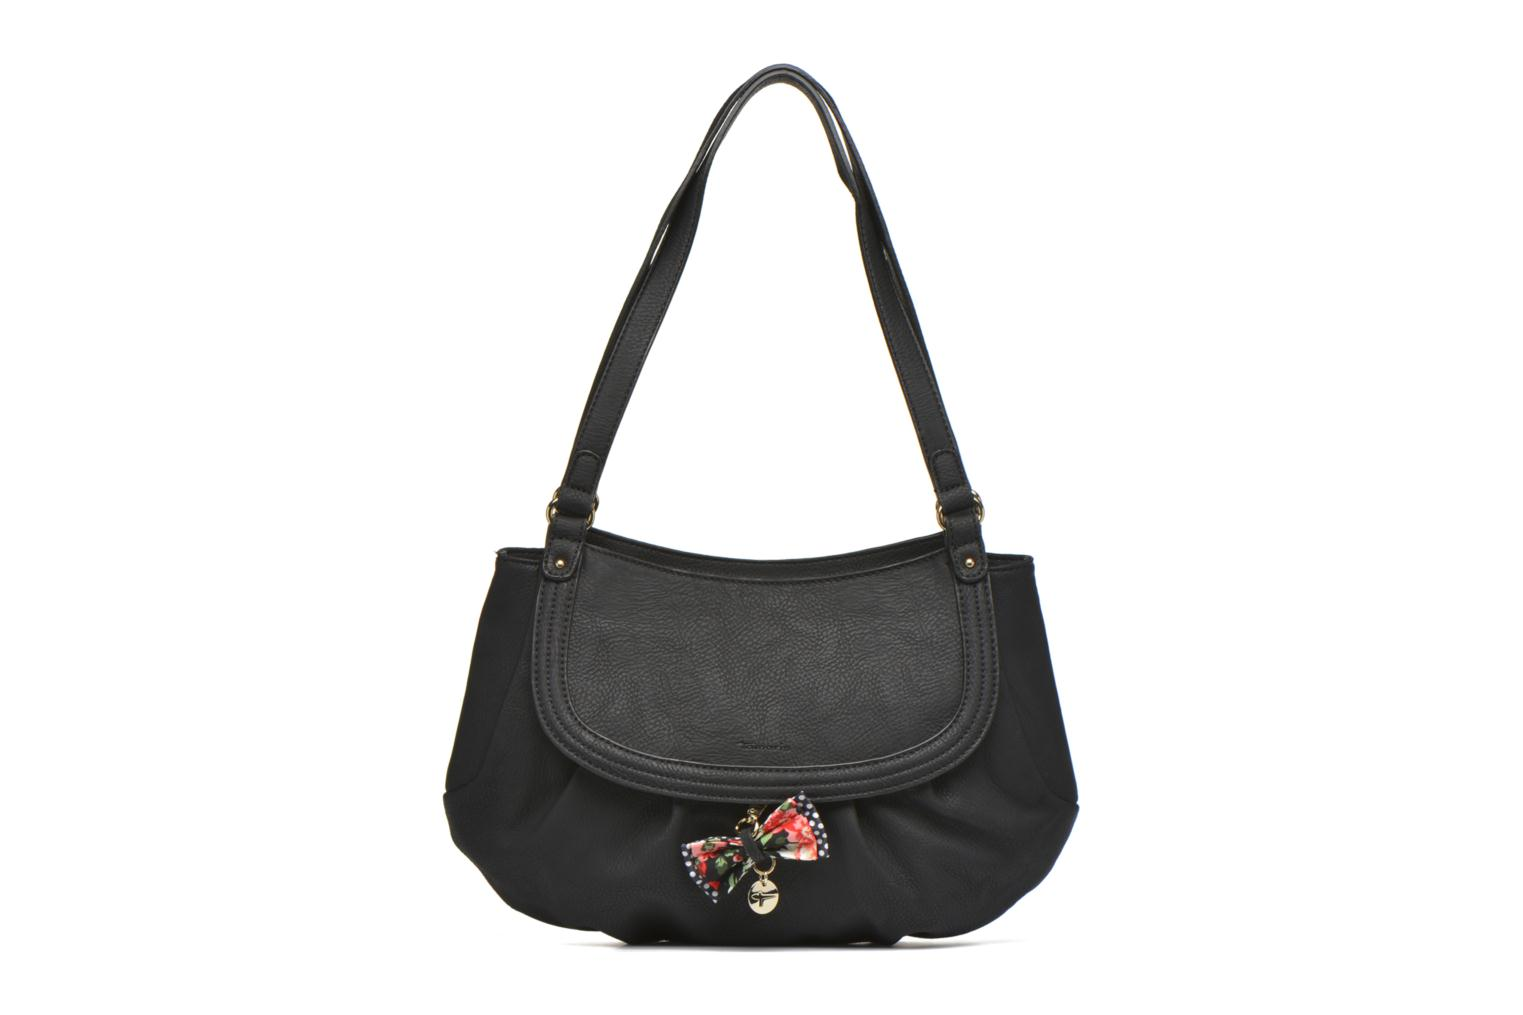 Lea - Shoulder bag Black Comb